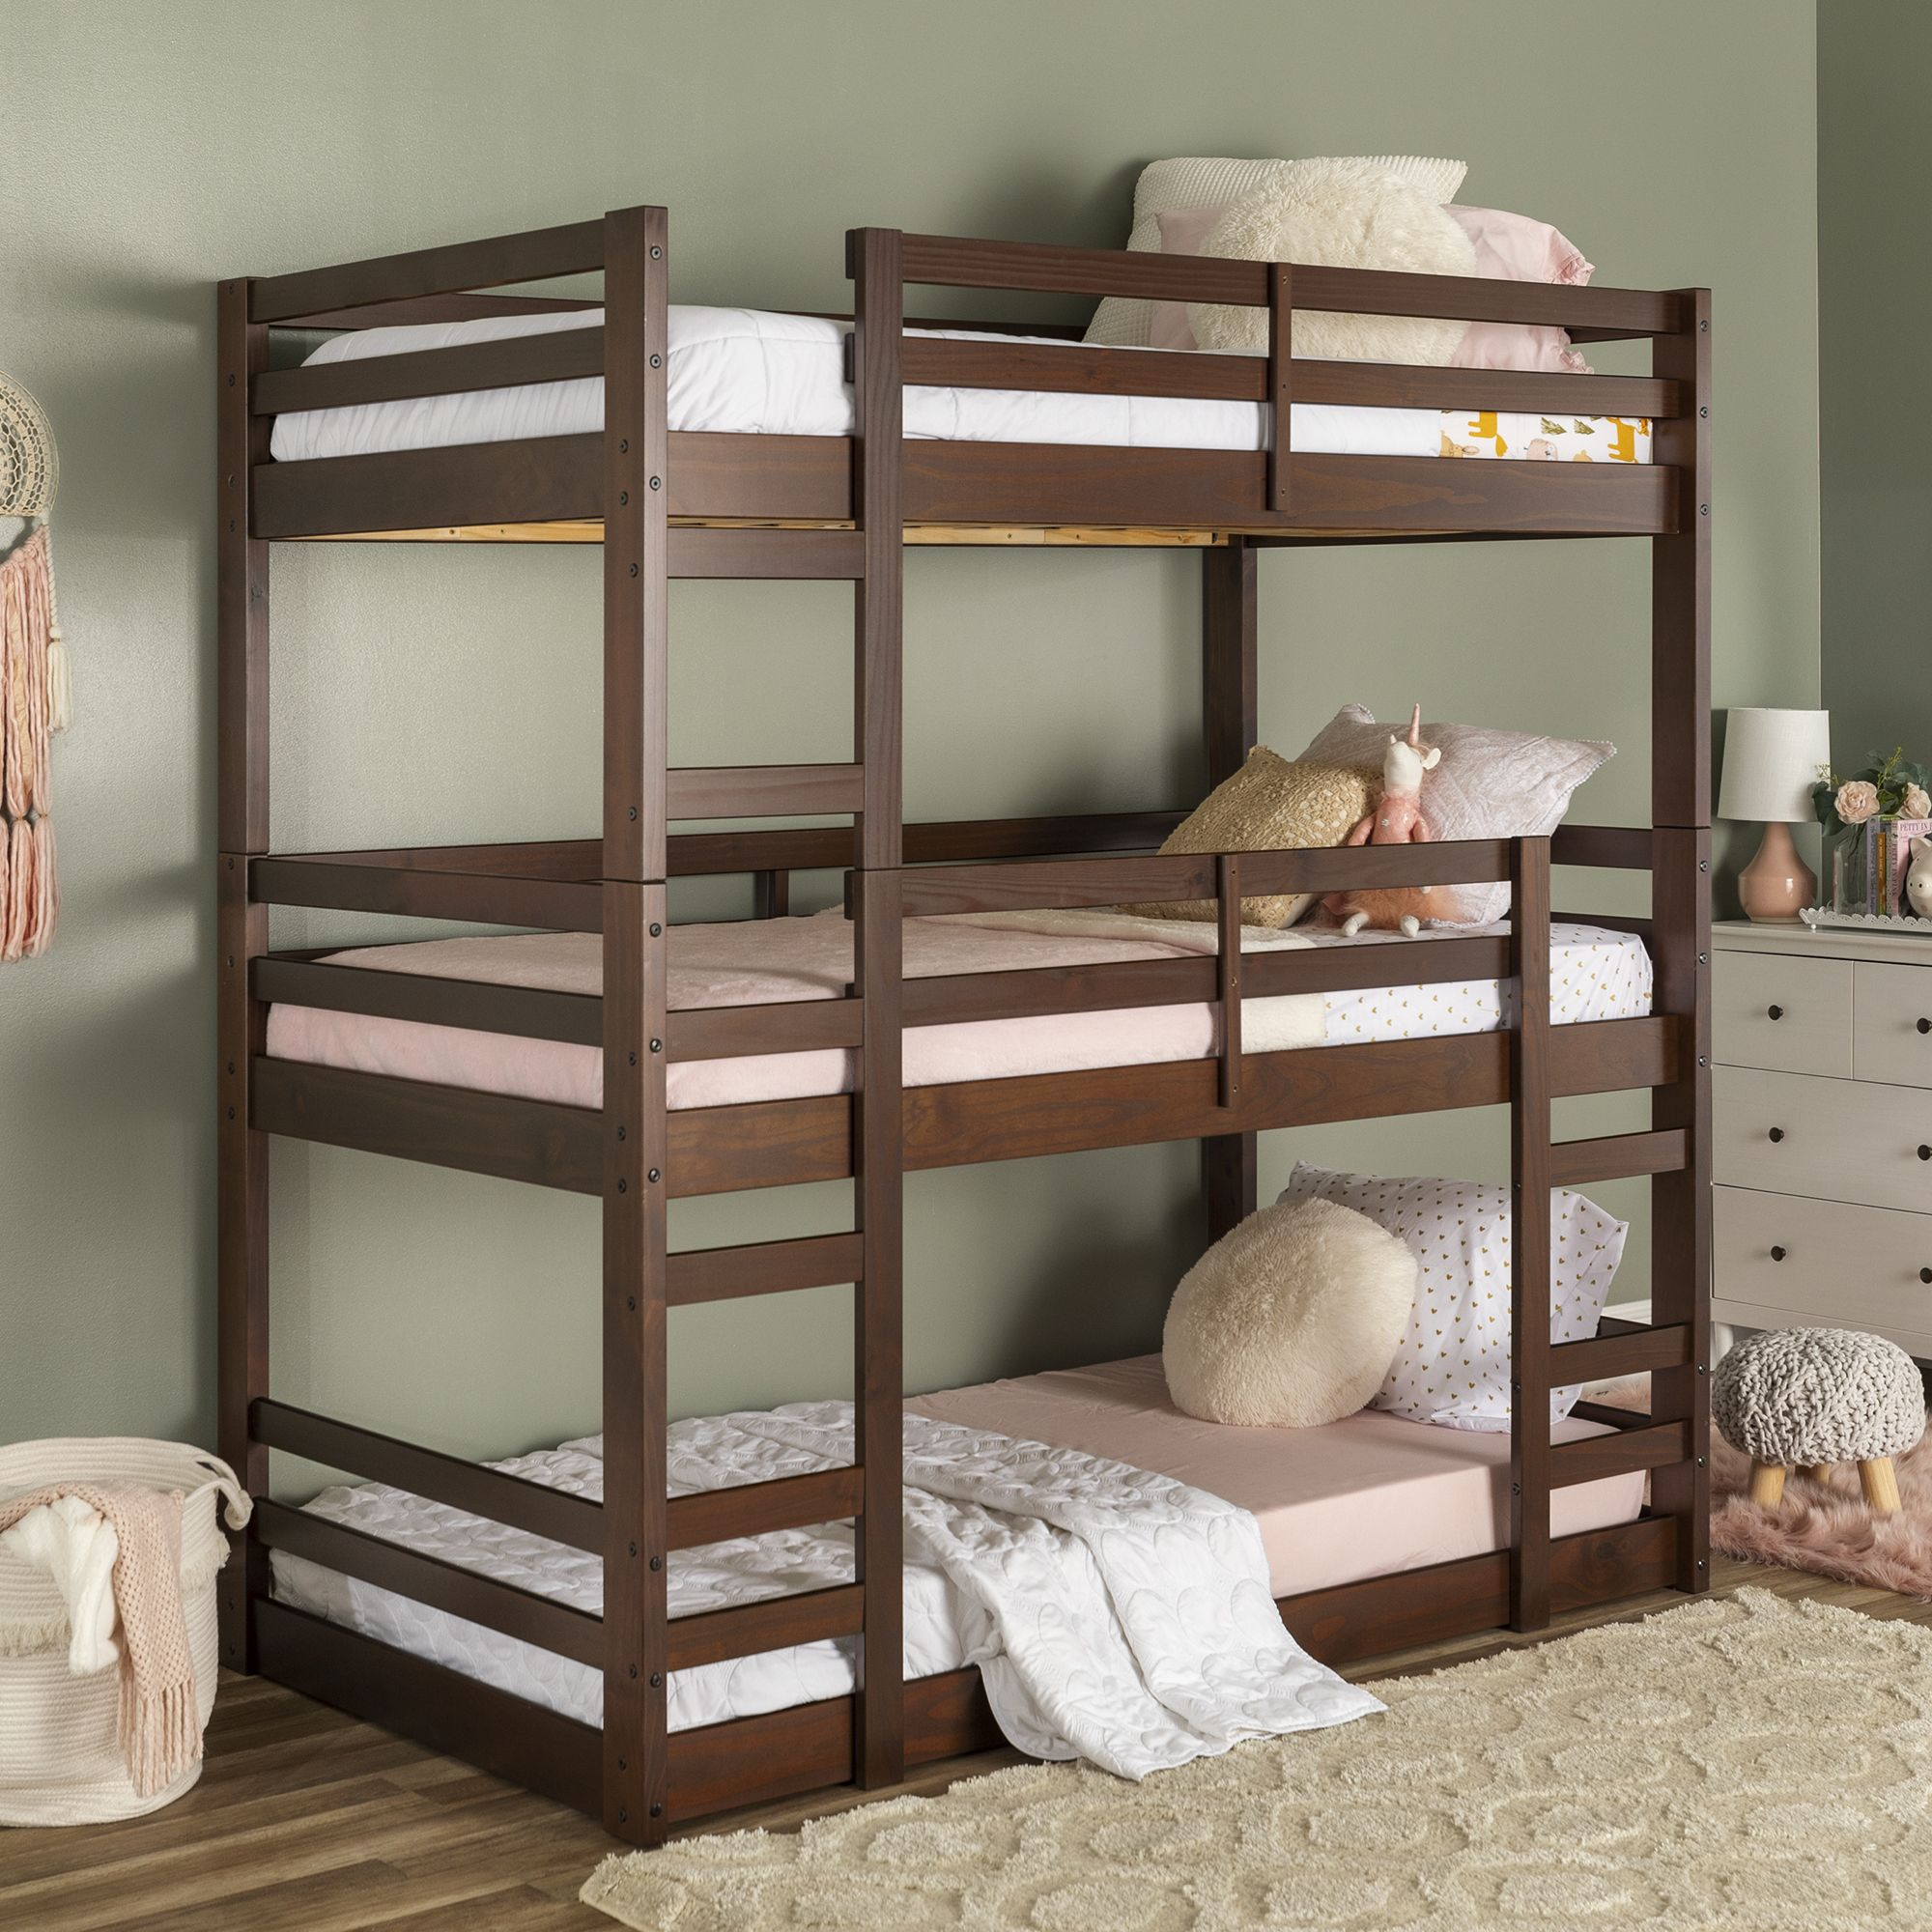 Manor Park Solid Wood Triple Bunk Bed Twin Over Twin Walnut Walmart Com Triple Bunk Bed Bunk Beds For Girls Room Diy Bunk Bed Solid wood bunk beds twin over twin